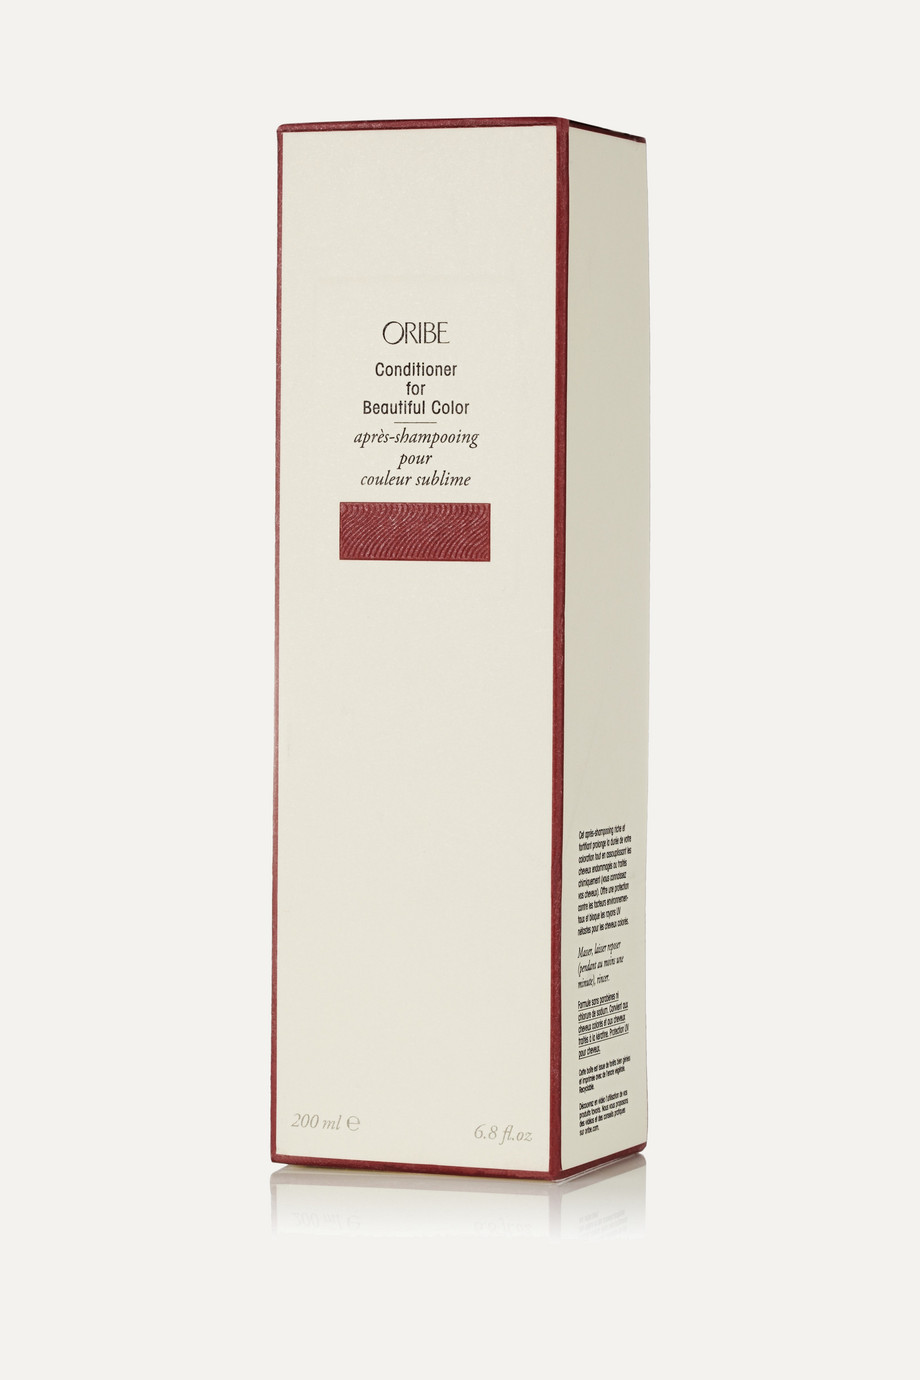 ORIBE Conditioner for Beautiful Color, 200ml